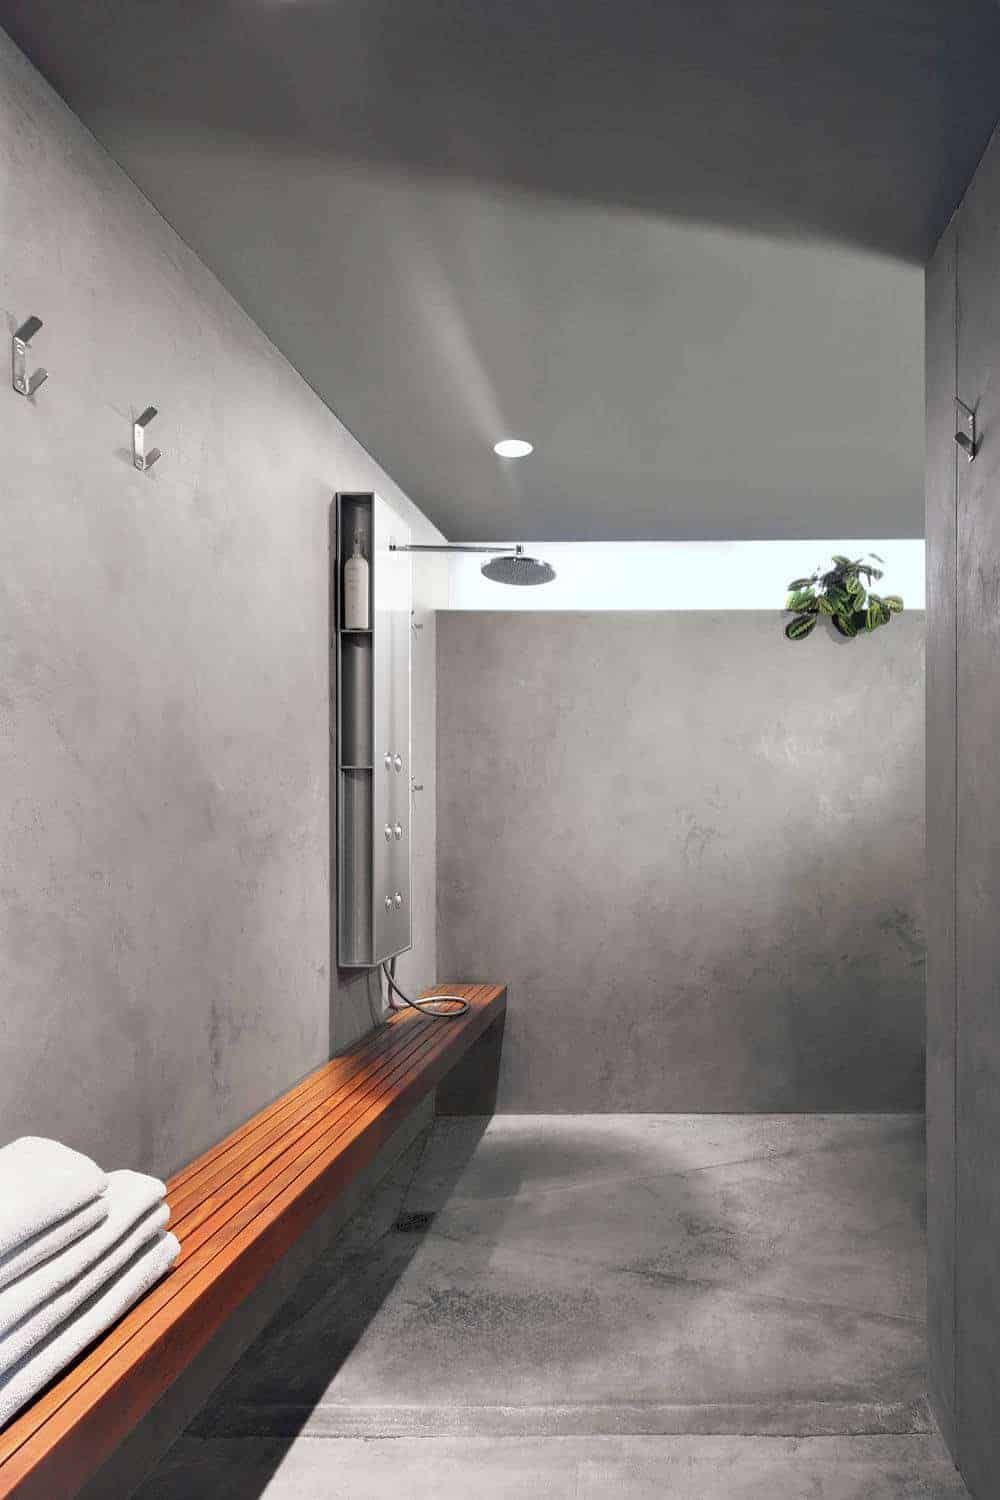 36 Doorless Walk In Shower Ideas And Designs 2020 Edition In 2020 Showers Without Doors Concrete Bathroom Bathroom Interior Design